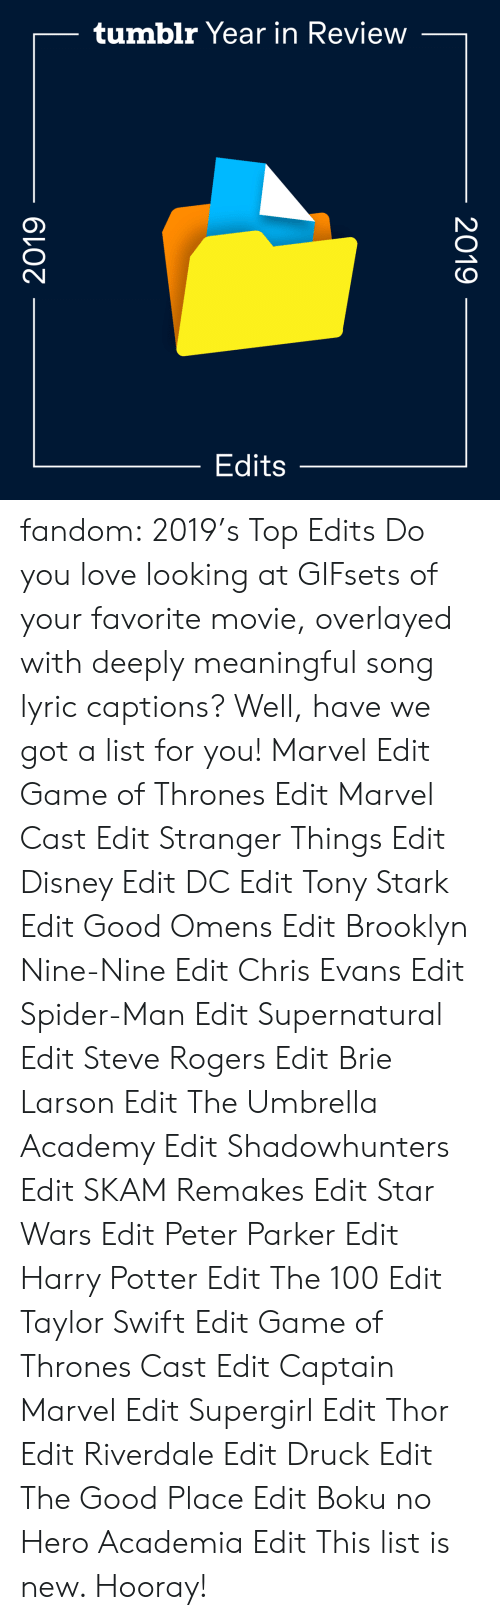 taylor: tumblr Year in Review  Edits  2019  2019 fandom:  2019's Top Edits  Do you love looking at GIFsets of your favorite movie, overlayed with deeply meaningful song lyric captions? Well, have we got a list for you!  Marvel Edit  Game of Thrones Edit  Marvel Cast Edit  Stranger Things Edit  Disney Edit  DC Edit  Tony Stark Edit  Good Omens Edit  Brooklyn Nine-Nine Edit  Chris Evans Edit  Spider-Man Edit  Supernatural Edit  Steve Rogers Edit  Brie Larson Edit  The Umbrella Academy Edit  Shadowhunters Edit  SKAM Remakes Edit  Star Wars Edit  Peter Parker Edit  Harry Potter Edit  The 100 Edit  Taylor Swift Edit  Game of Thrones Cast Edit  Captain Marvel Edit  Supergirl Edit  Thor Edit  Riverdale Edit  Druck Edit  The Good Place Edit  Boku no Hero Academia Edit This list is new. Hooray!